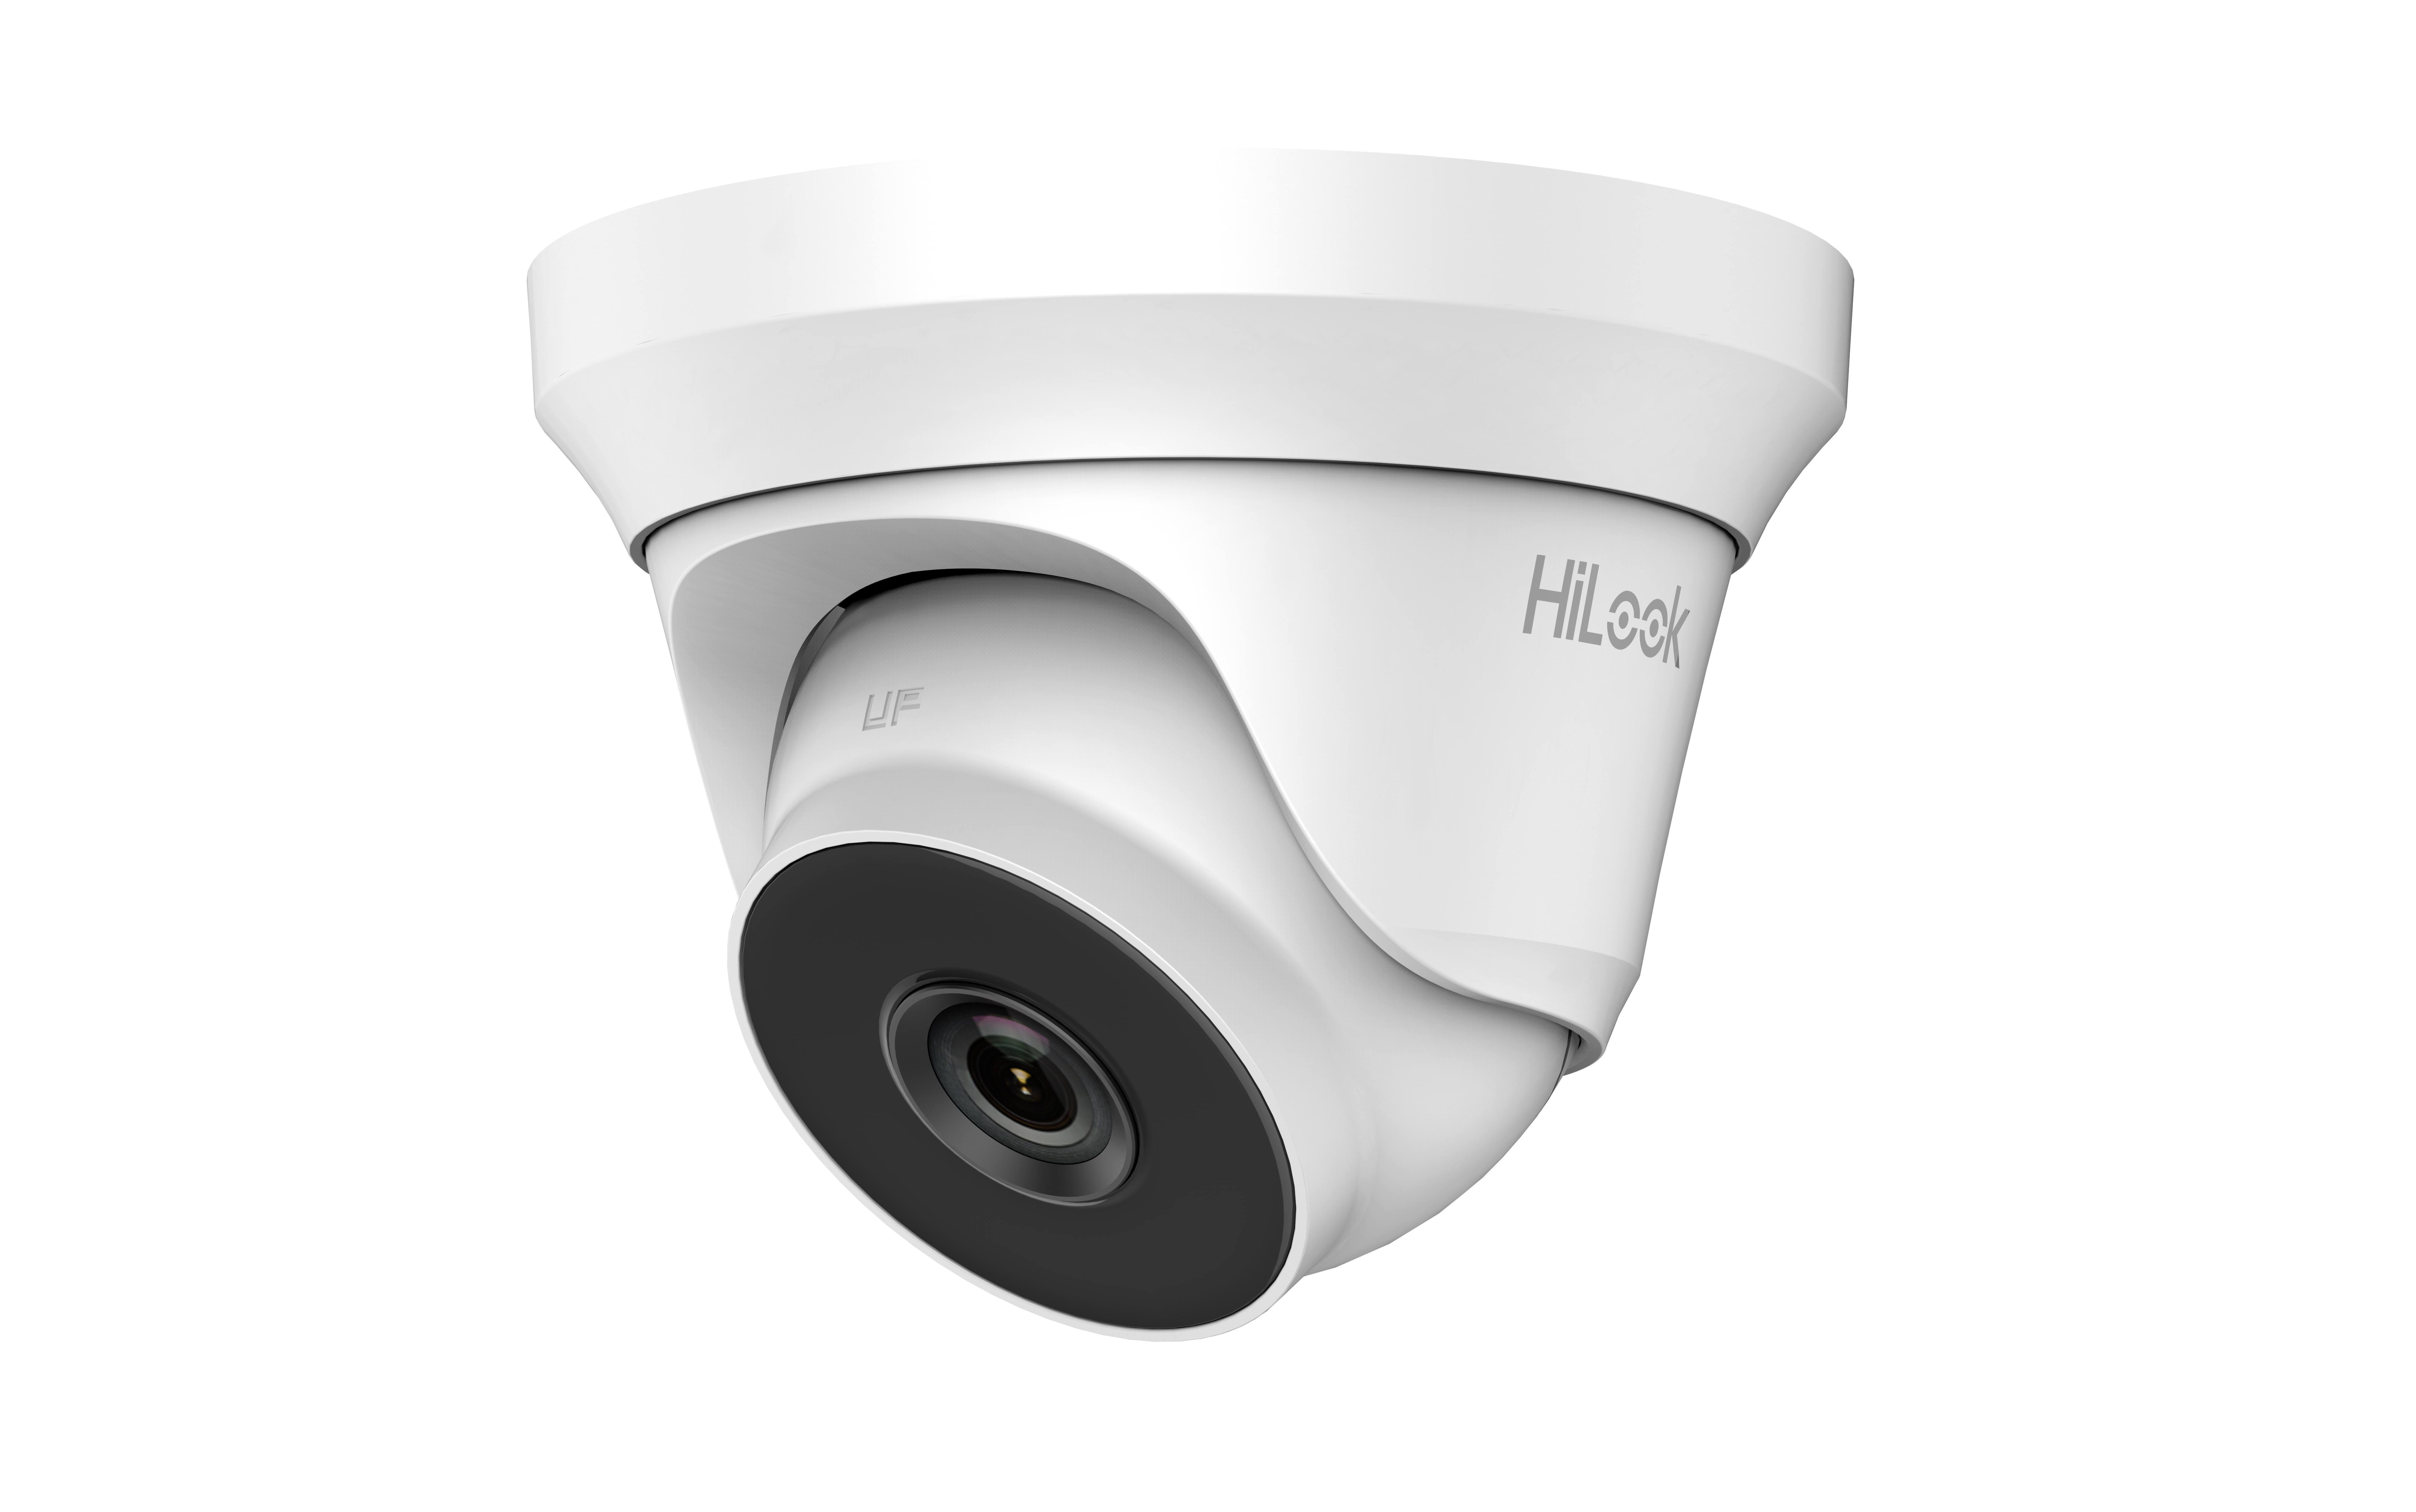 Hikvision HiLook THC-T220-MC 2.8mm 2mp Turbo HD 40m EXIR Turret Indoor/Outdoor 4-in-1 Camera IP66 – White